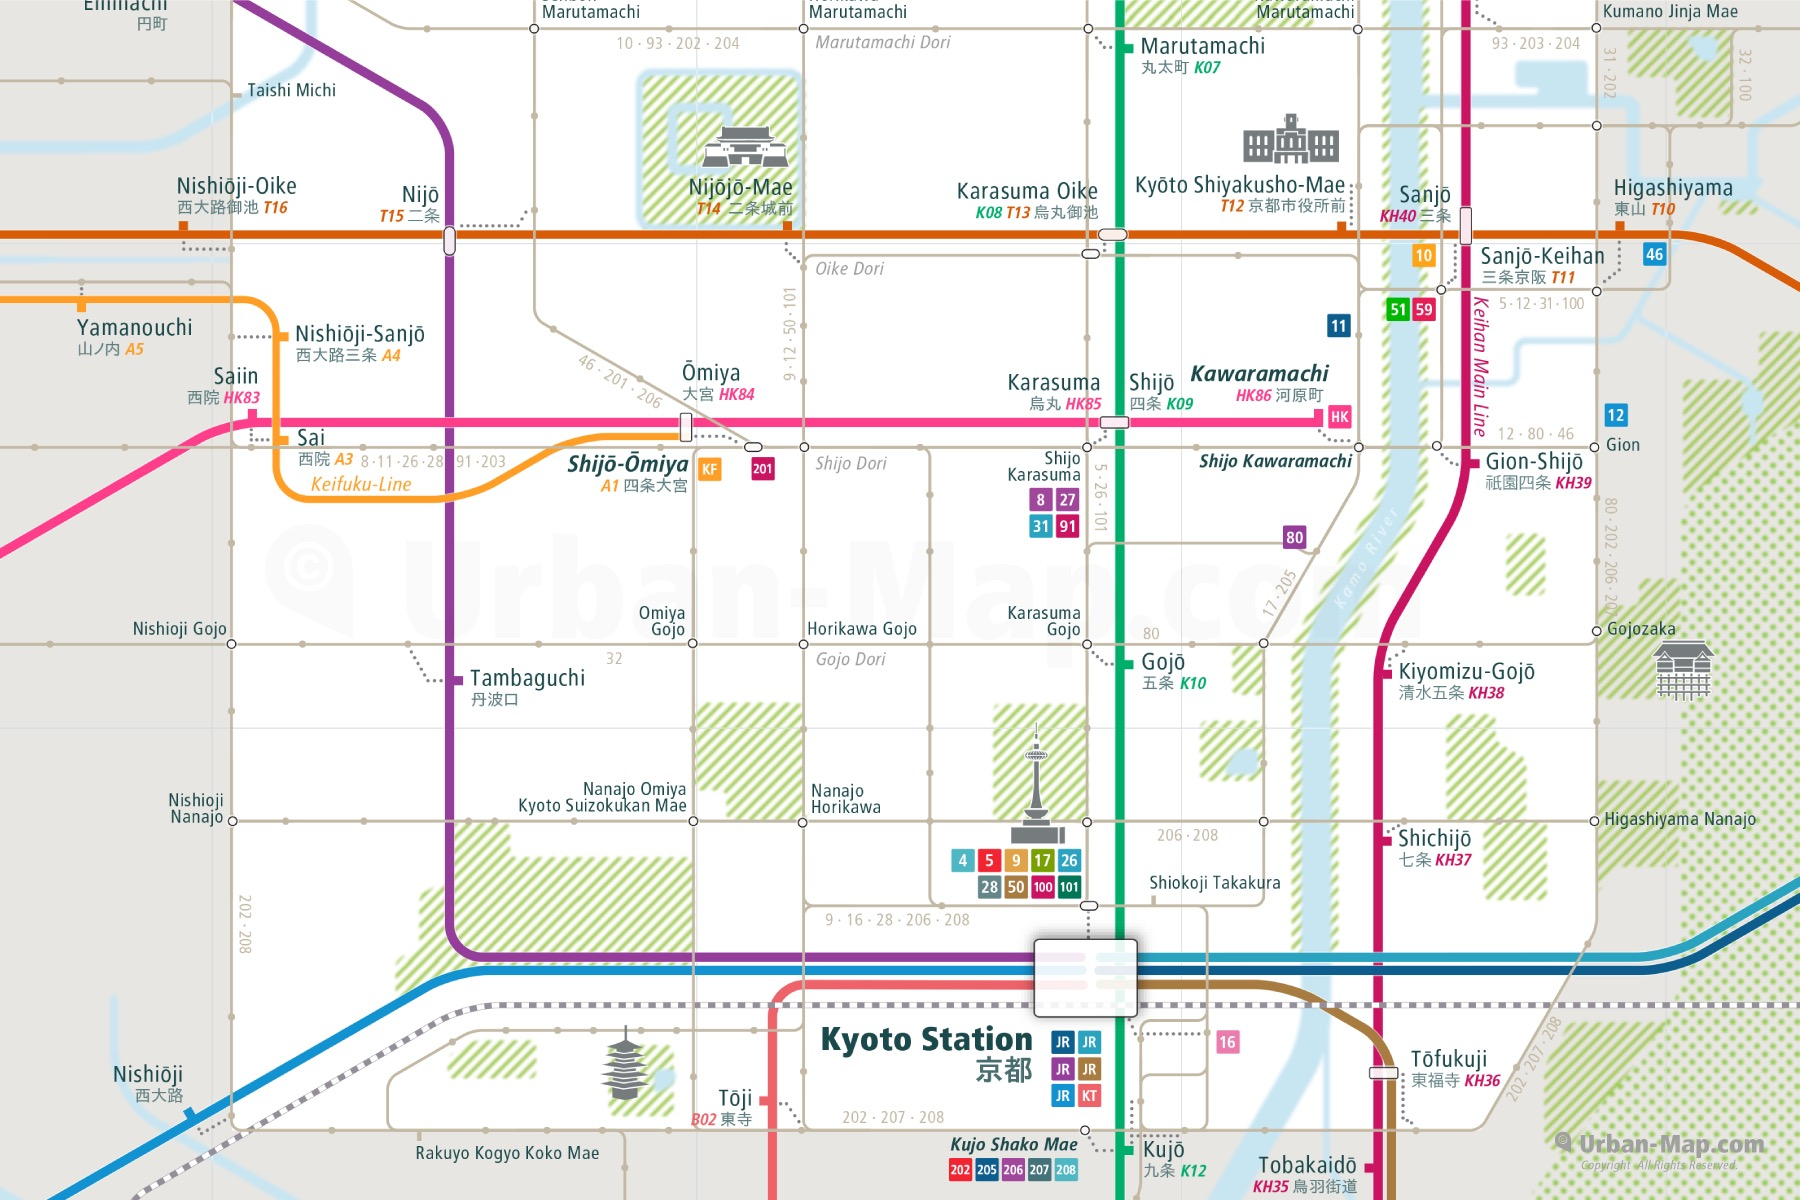 Kyoto City Rail Map shows the train and public transportation routes of Metro, Bus - Close-Up